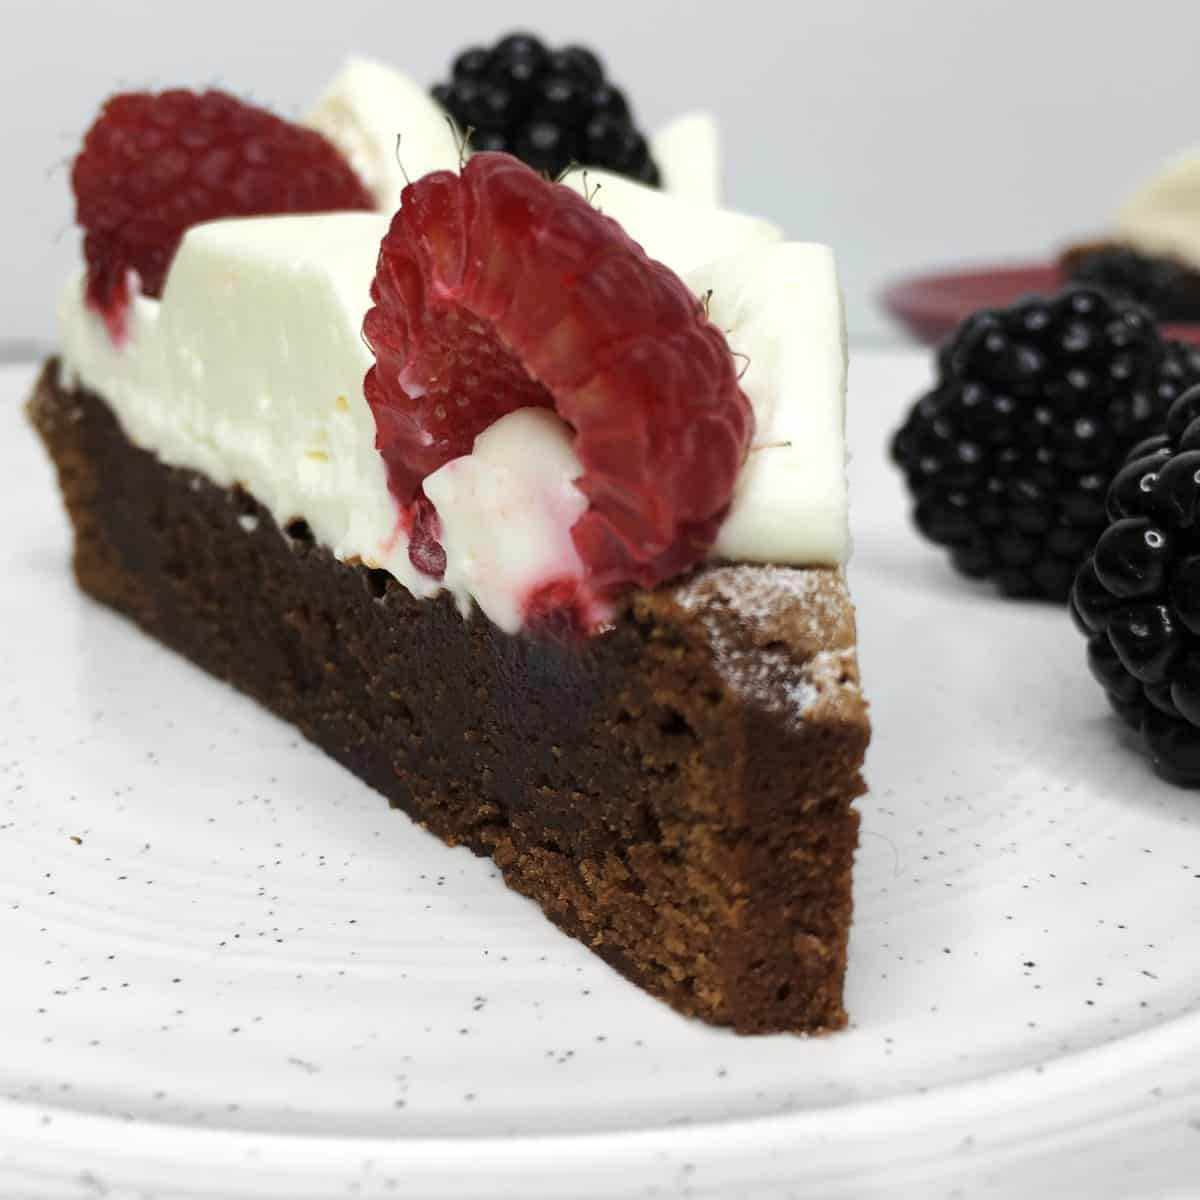 A slice of decorated brownie cake with blackberries on a white plate